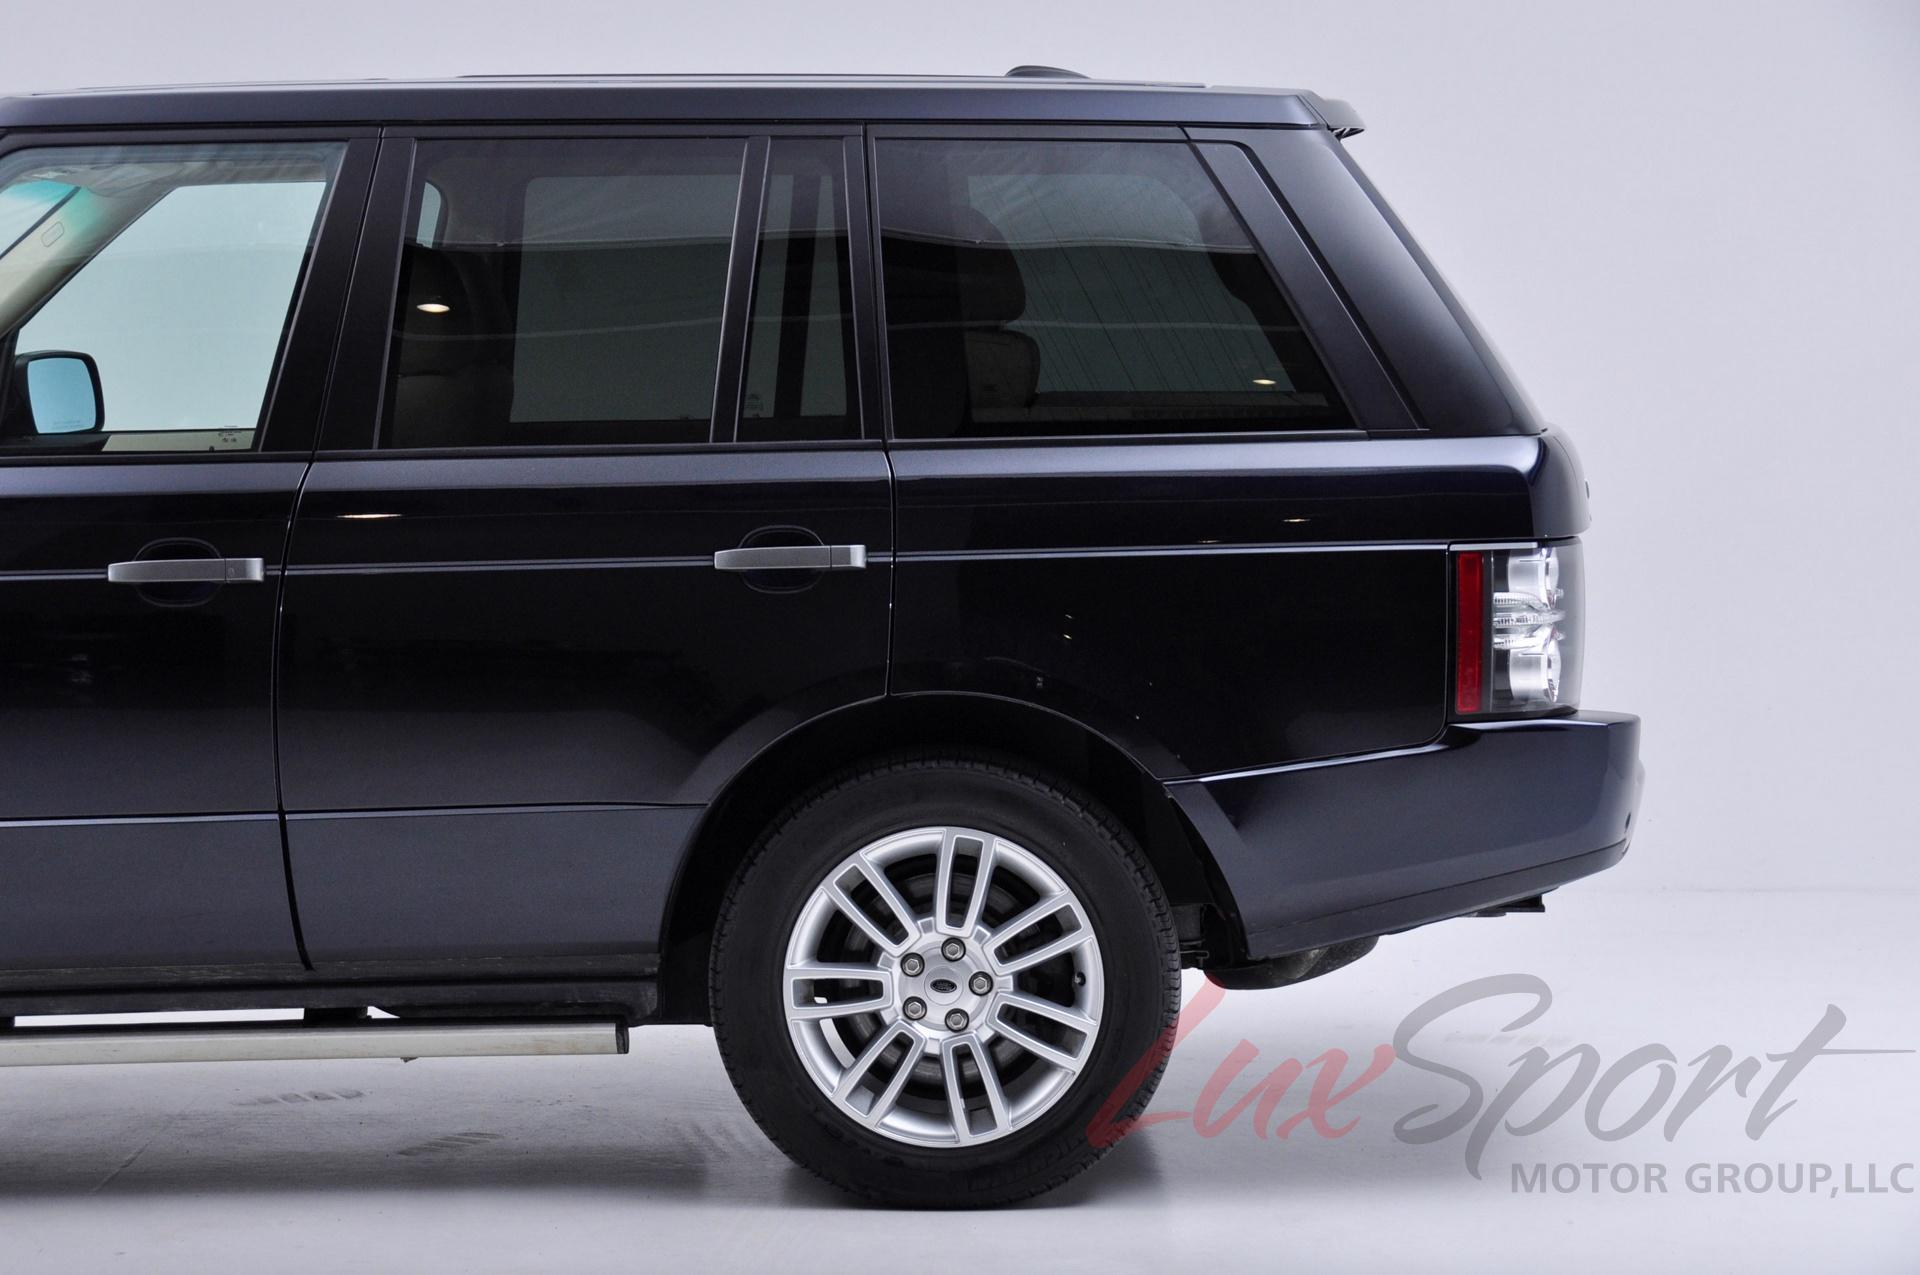 2010 land rover range rover hse stock 201001 for sale near new hyde park ny ny land rover. Black Bedroom Furniture Sets. Home Design Ideas